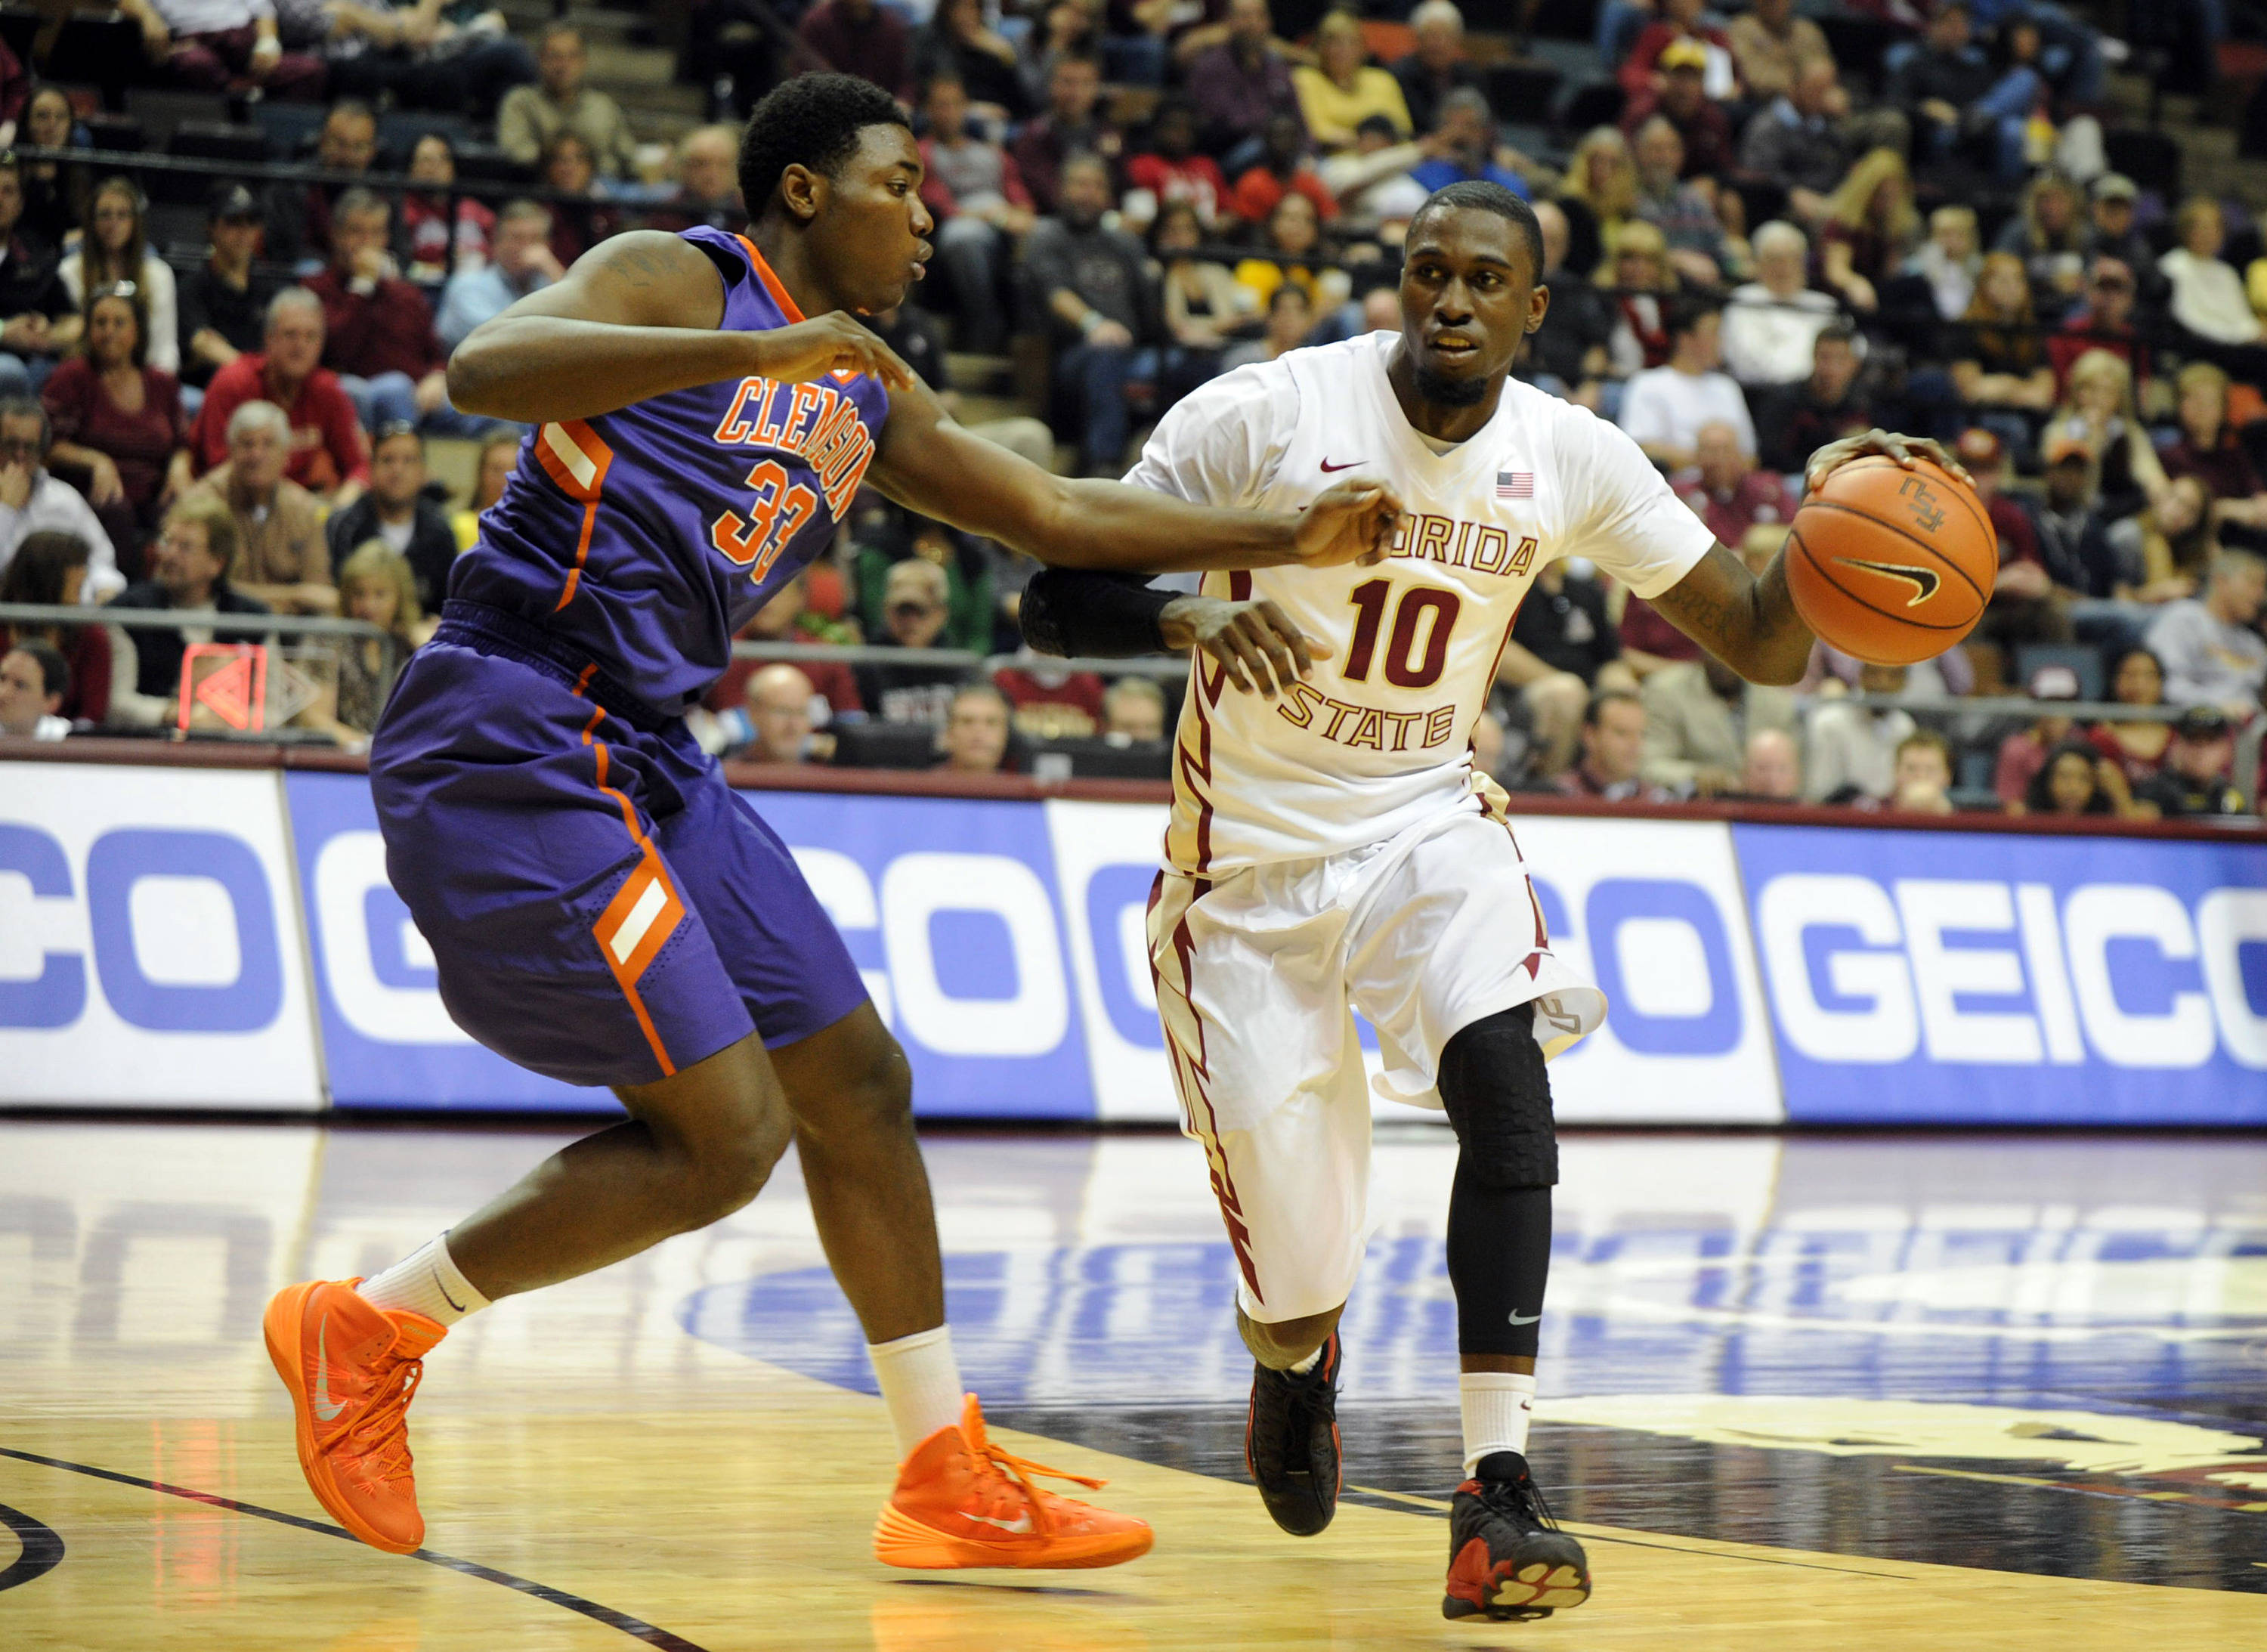 Feb 1, 2014; Tallahassee, FL, USA; Florida State Seminoles forward Okaro White (10) moves the ball past Clemson Tigers forward Josh Smith (33) during the first half at the Donald L. Tucker Center. Mandatory Credit: Melina Vastola-USA TODAY Sports